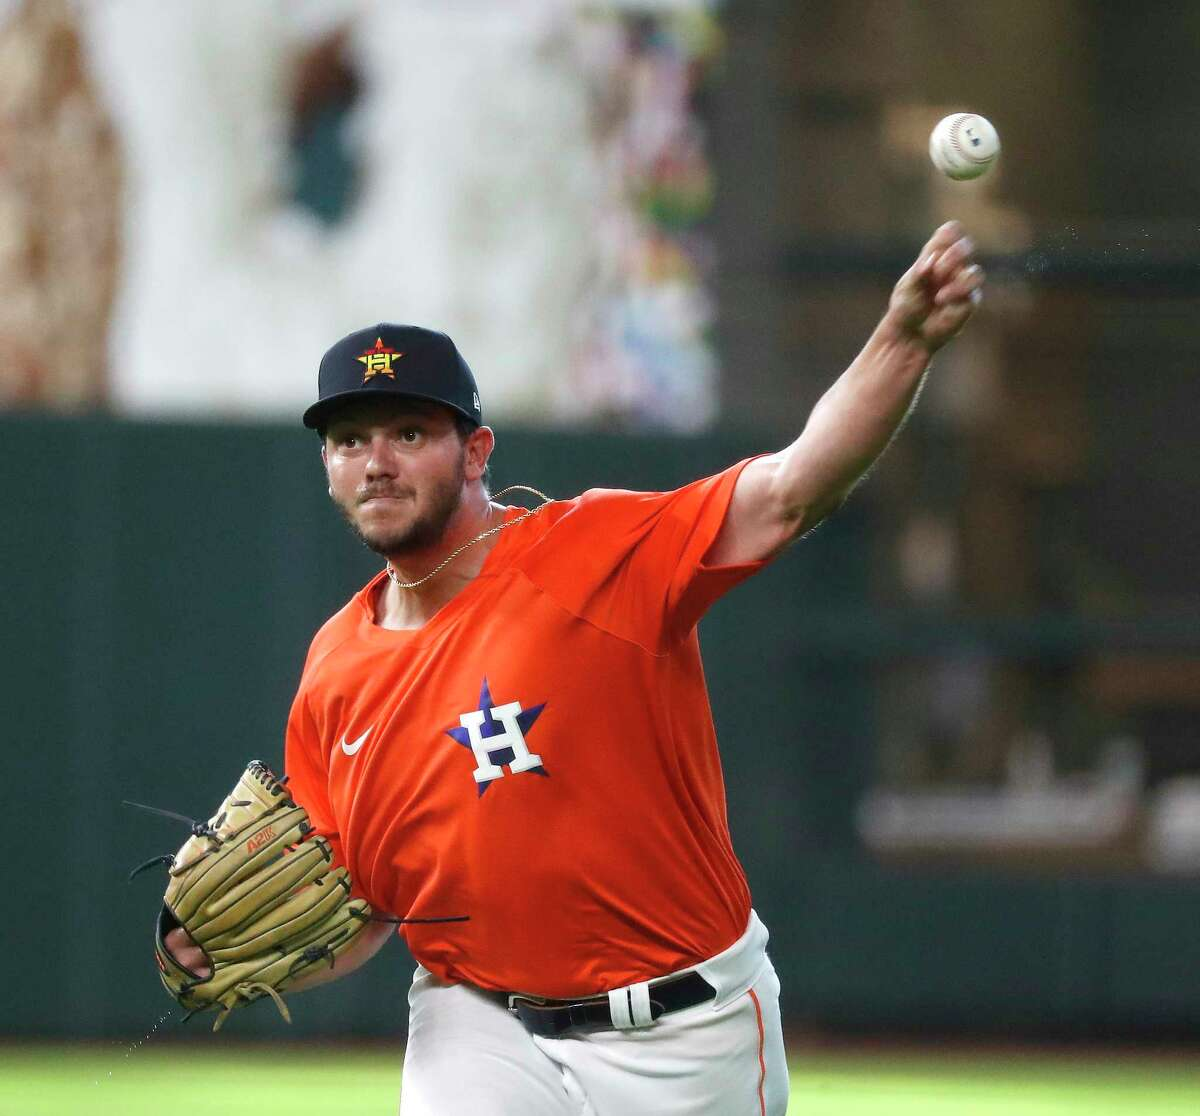 Slated to start Thursday for Class AAA Sugar Land, Ryan Hartman instead was called up to the Astros to help their taxed bullpen.